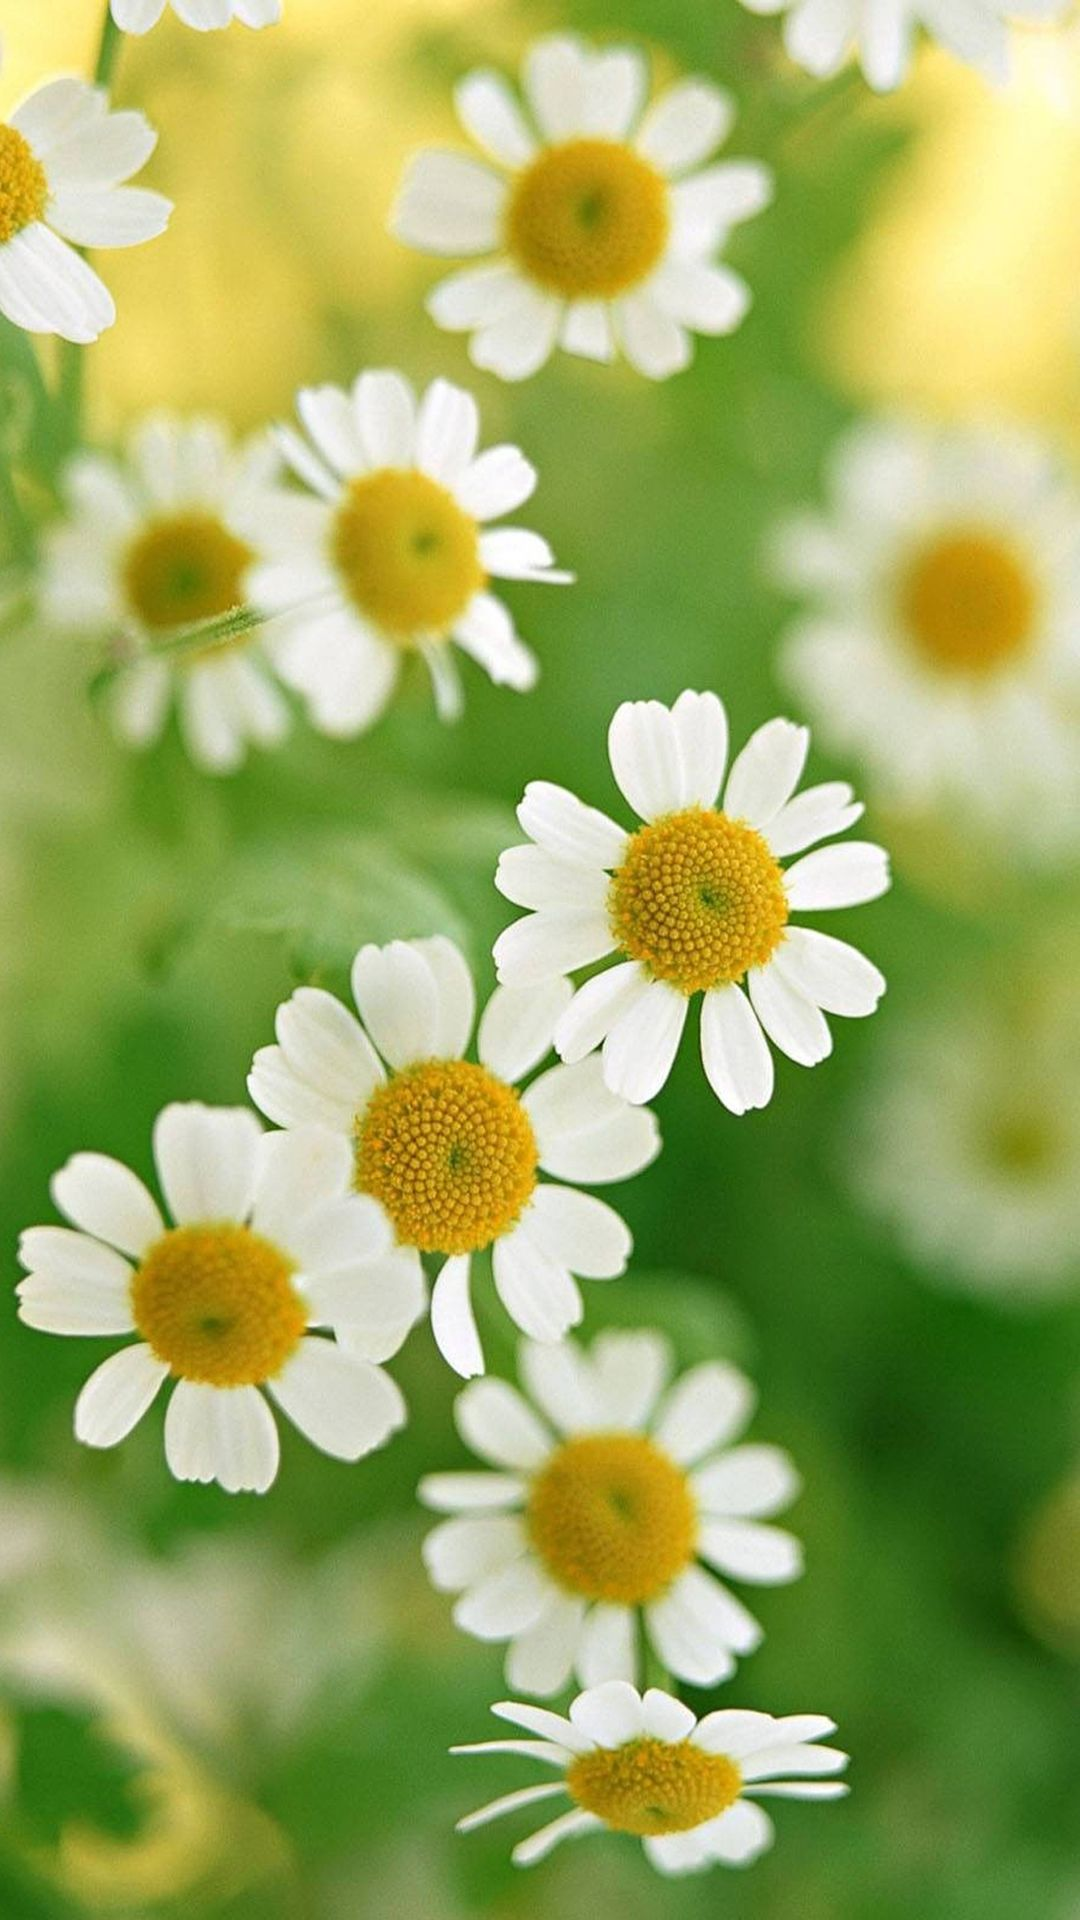 Nature White Daisy Flower iPhone 7 wallpaper iPhone 7